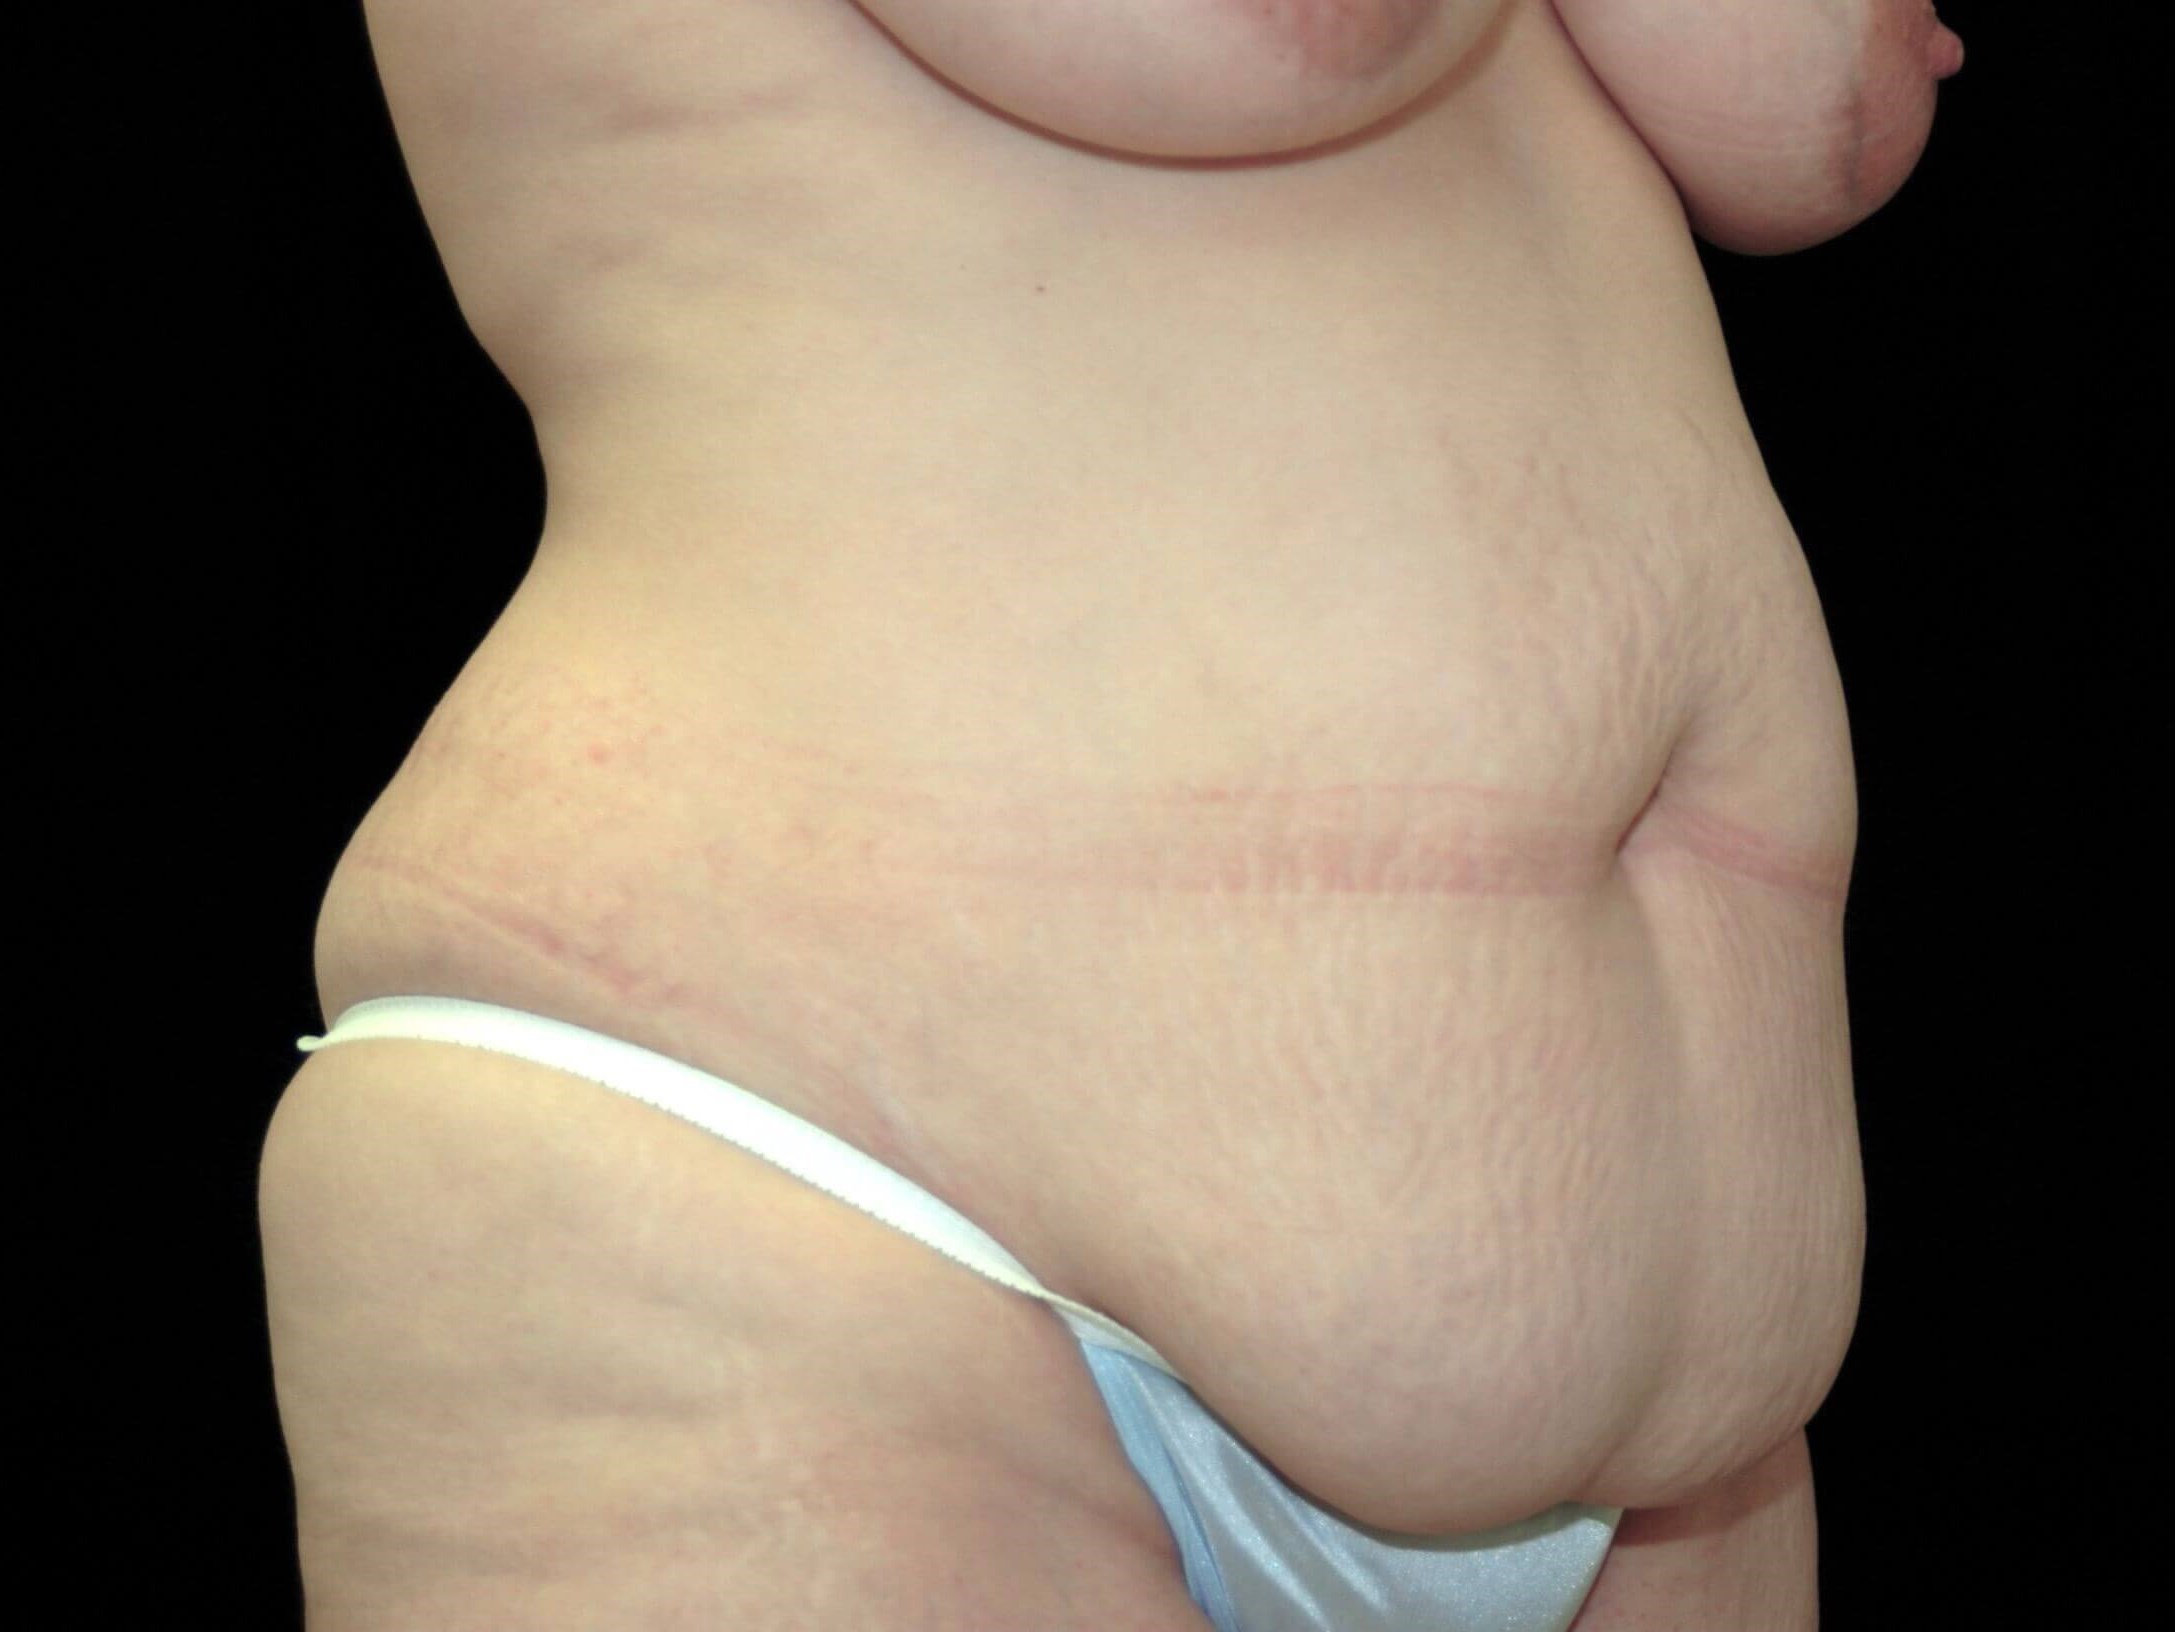 PLANO, TEXAS WOMAN HAS TUMMY TUCK WITH LIPOSUCTION TO LOVE-HANDLES